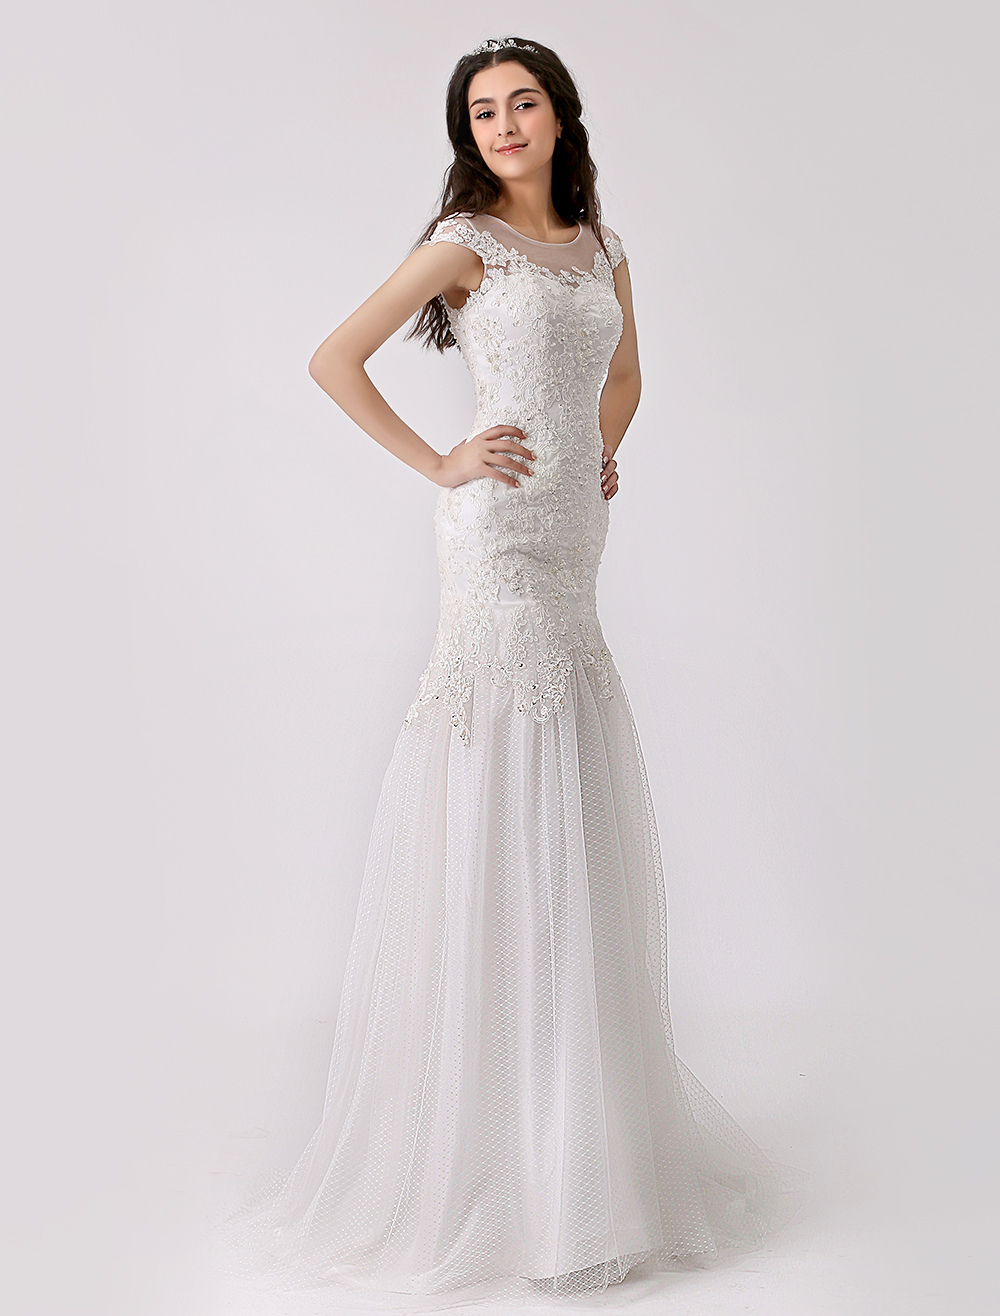 Lace and Tulle Trumpet Wedding Gown with Illusion Neckline Milanoo ...